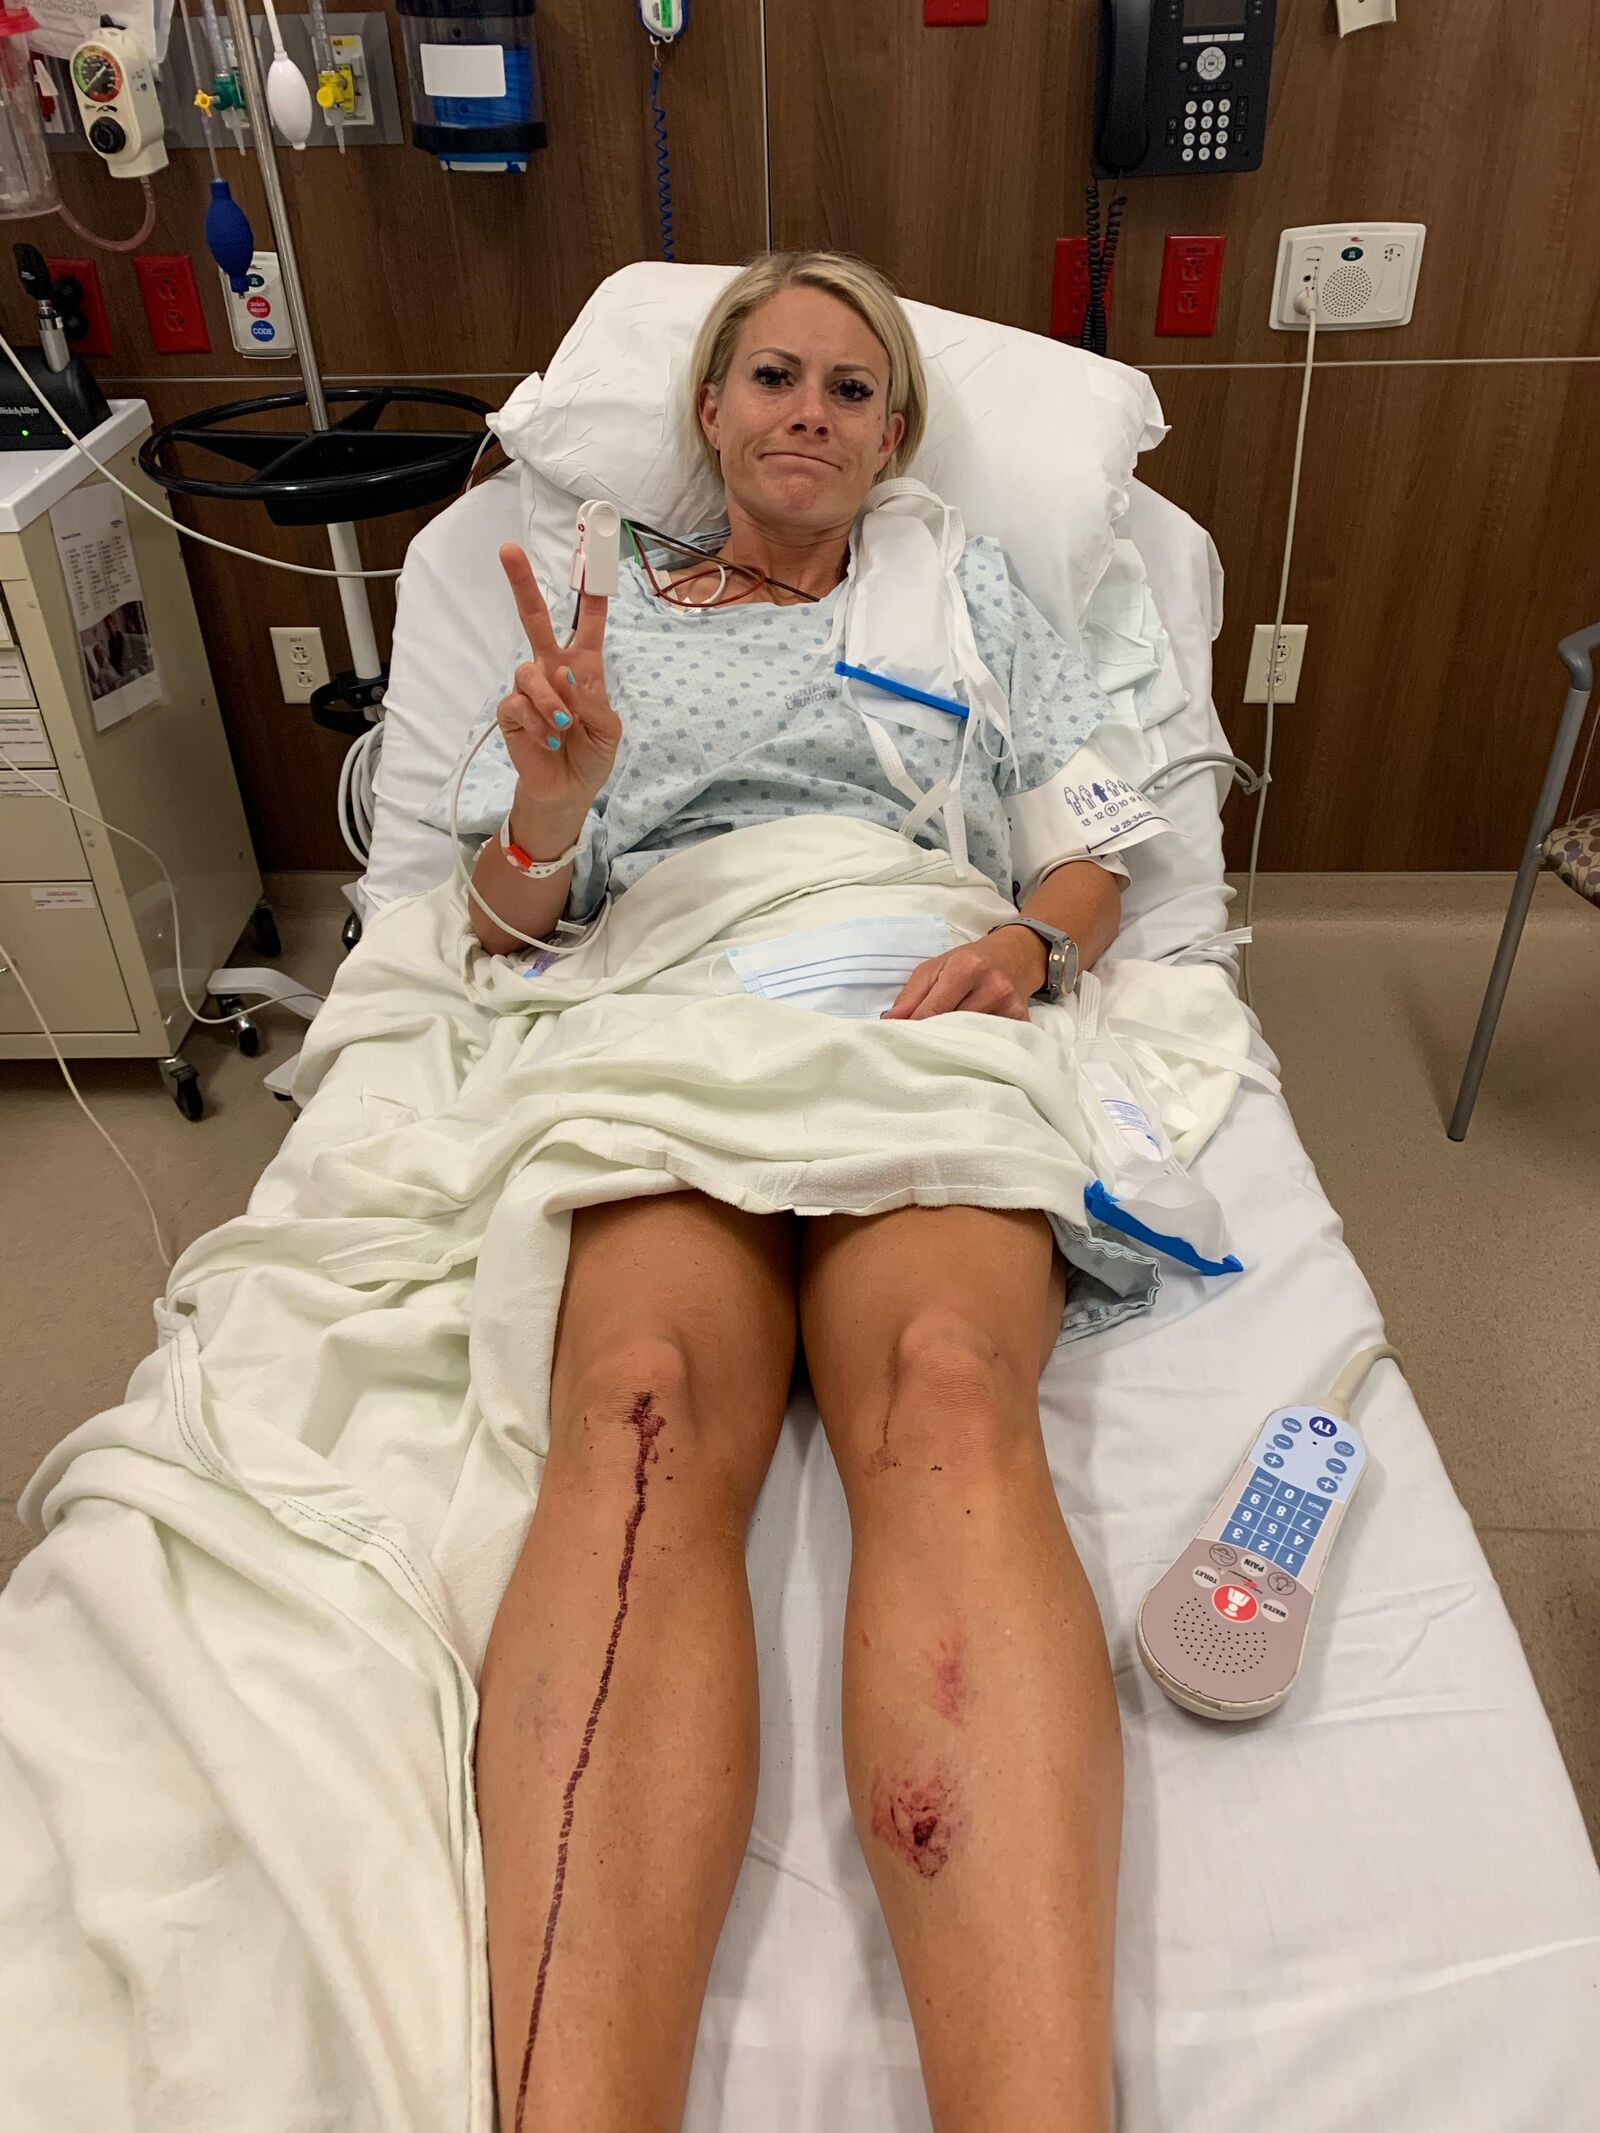 <p>A Utah County woman who survived a horrific crash that shut down Interstate 15 for several hours earlier this month says the accident should have never happened. (Photo: Heather J.)</p>